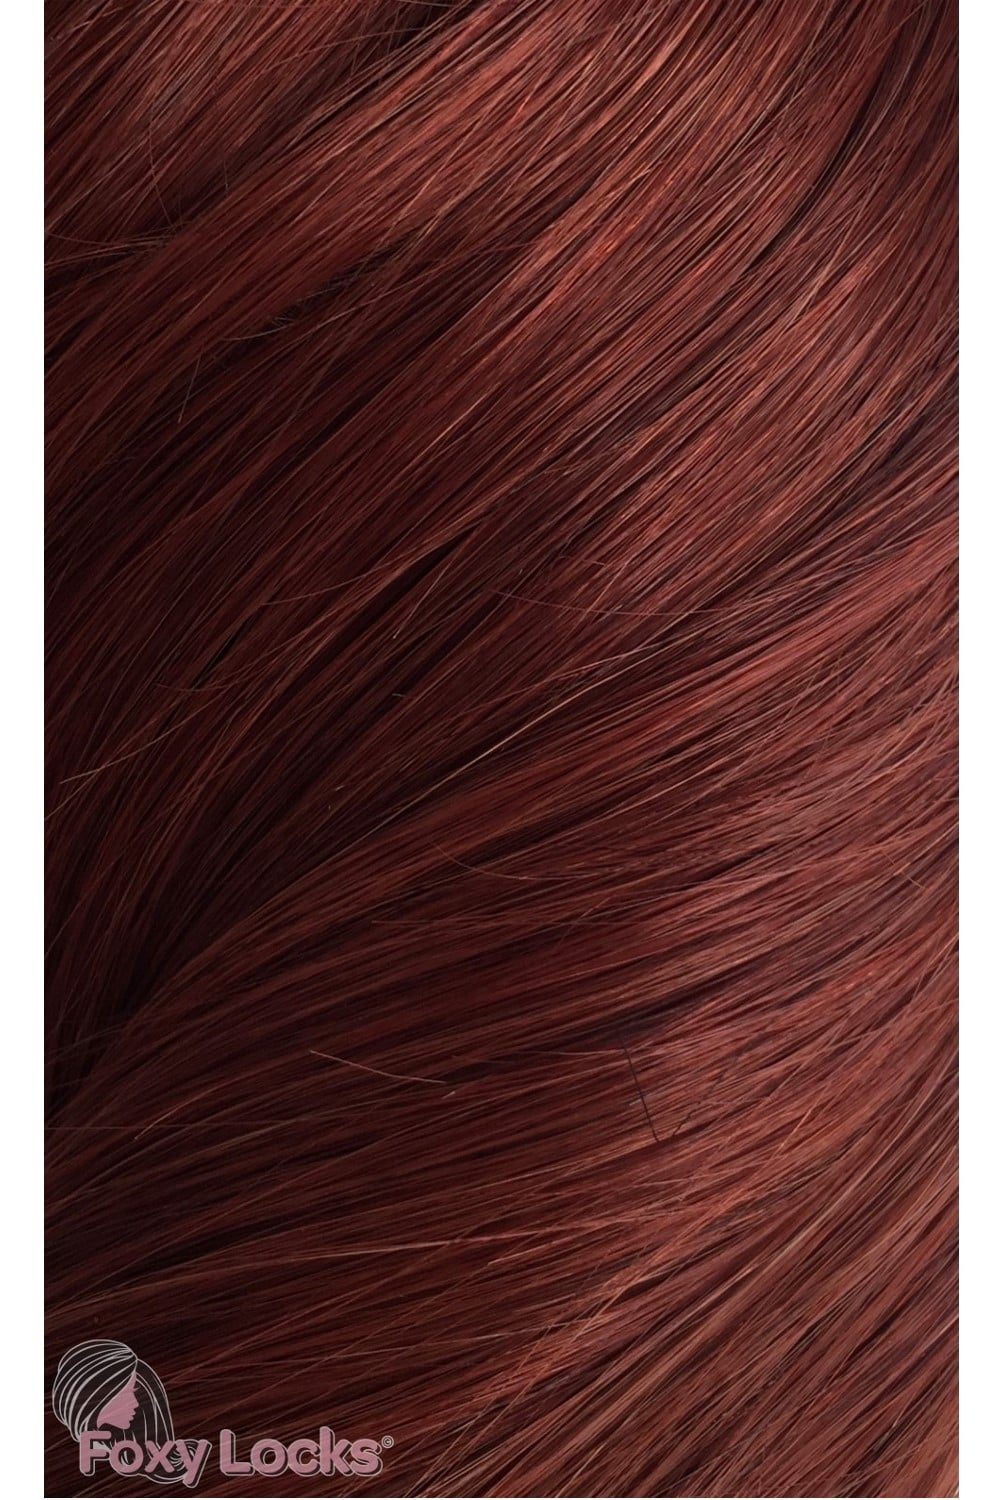 mahogany superior 20 clip in human hair extensions 230g from